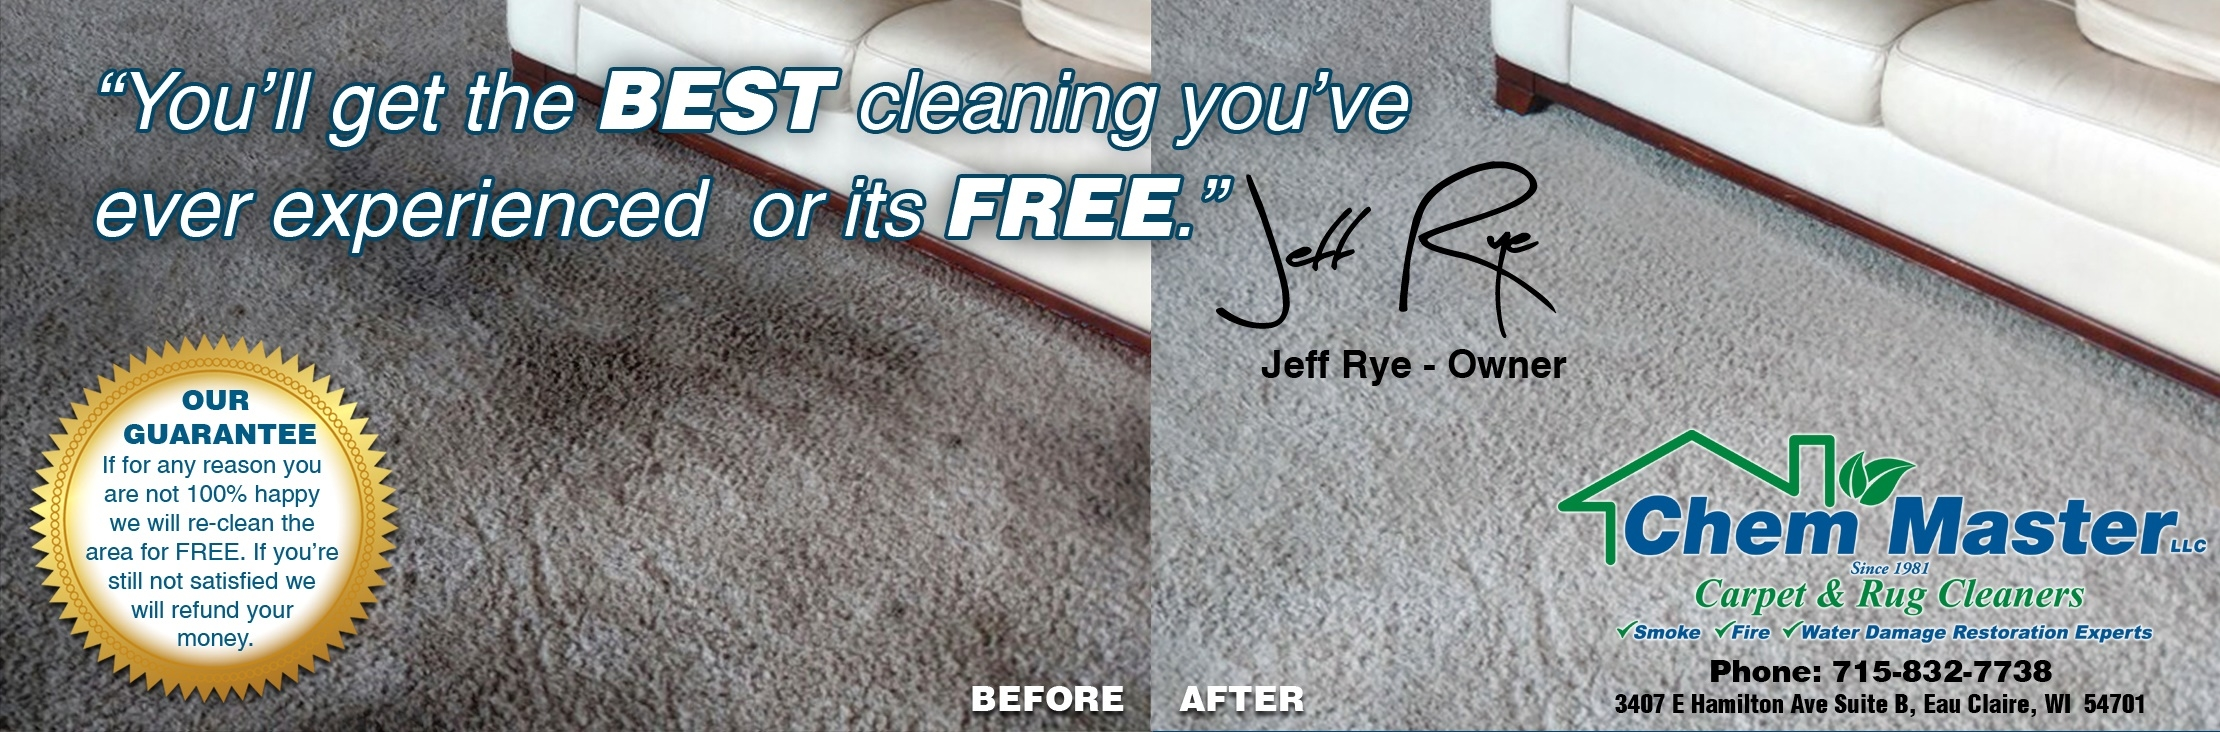 Carpet cleaning coupons madison wi